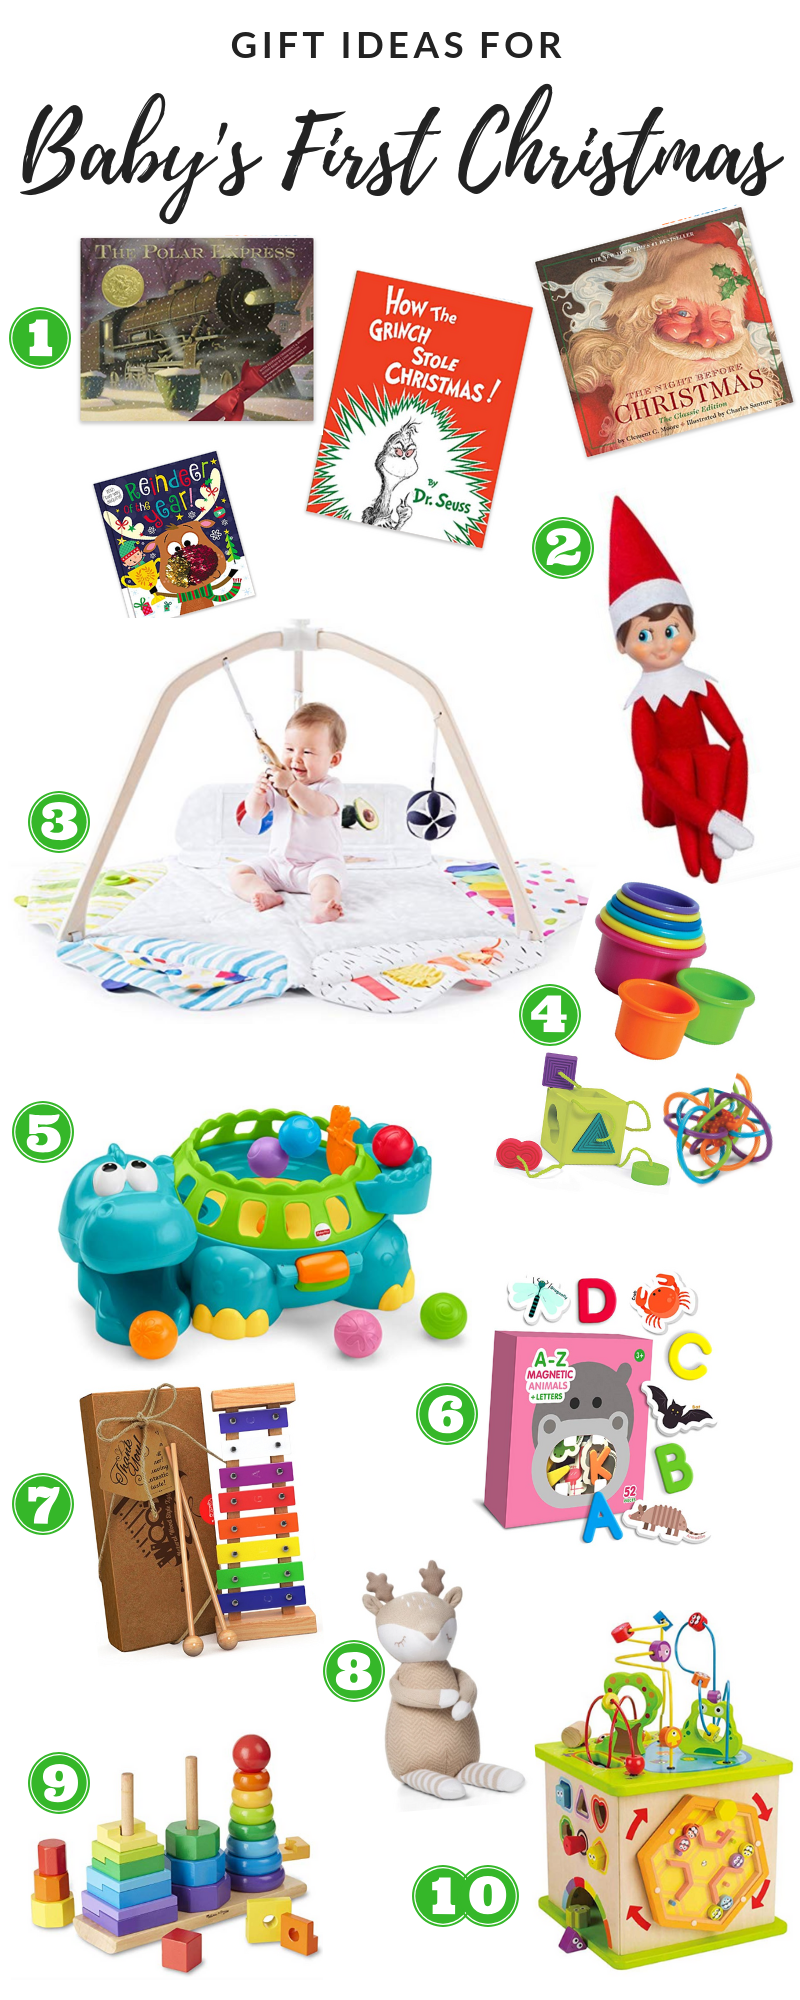 Gift Ideas For Baby's First Christmas - Dana Traynor